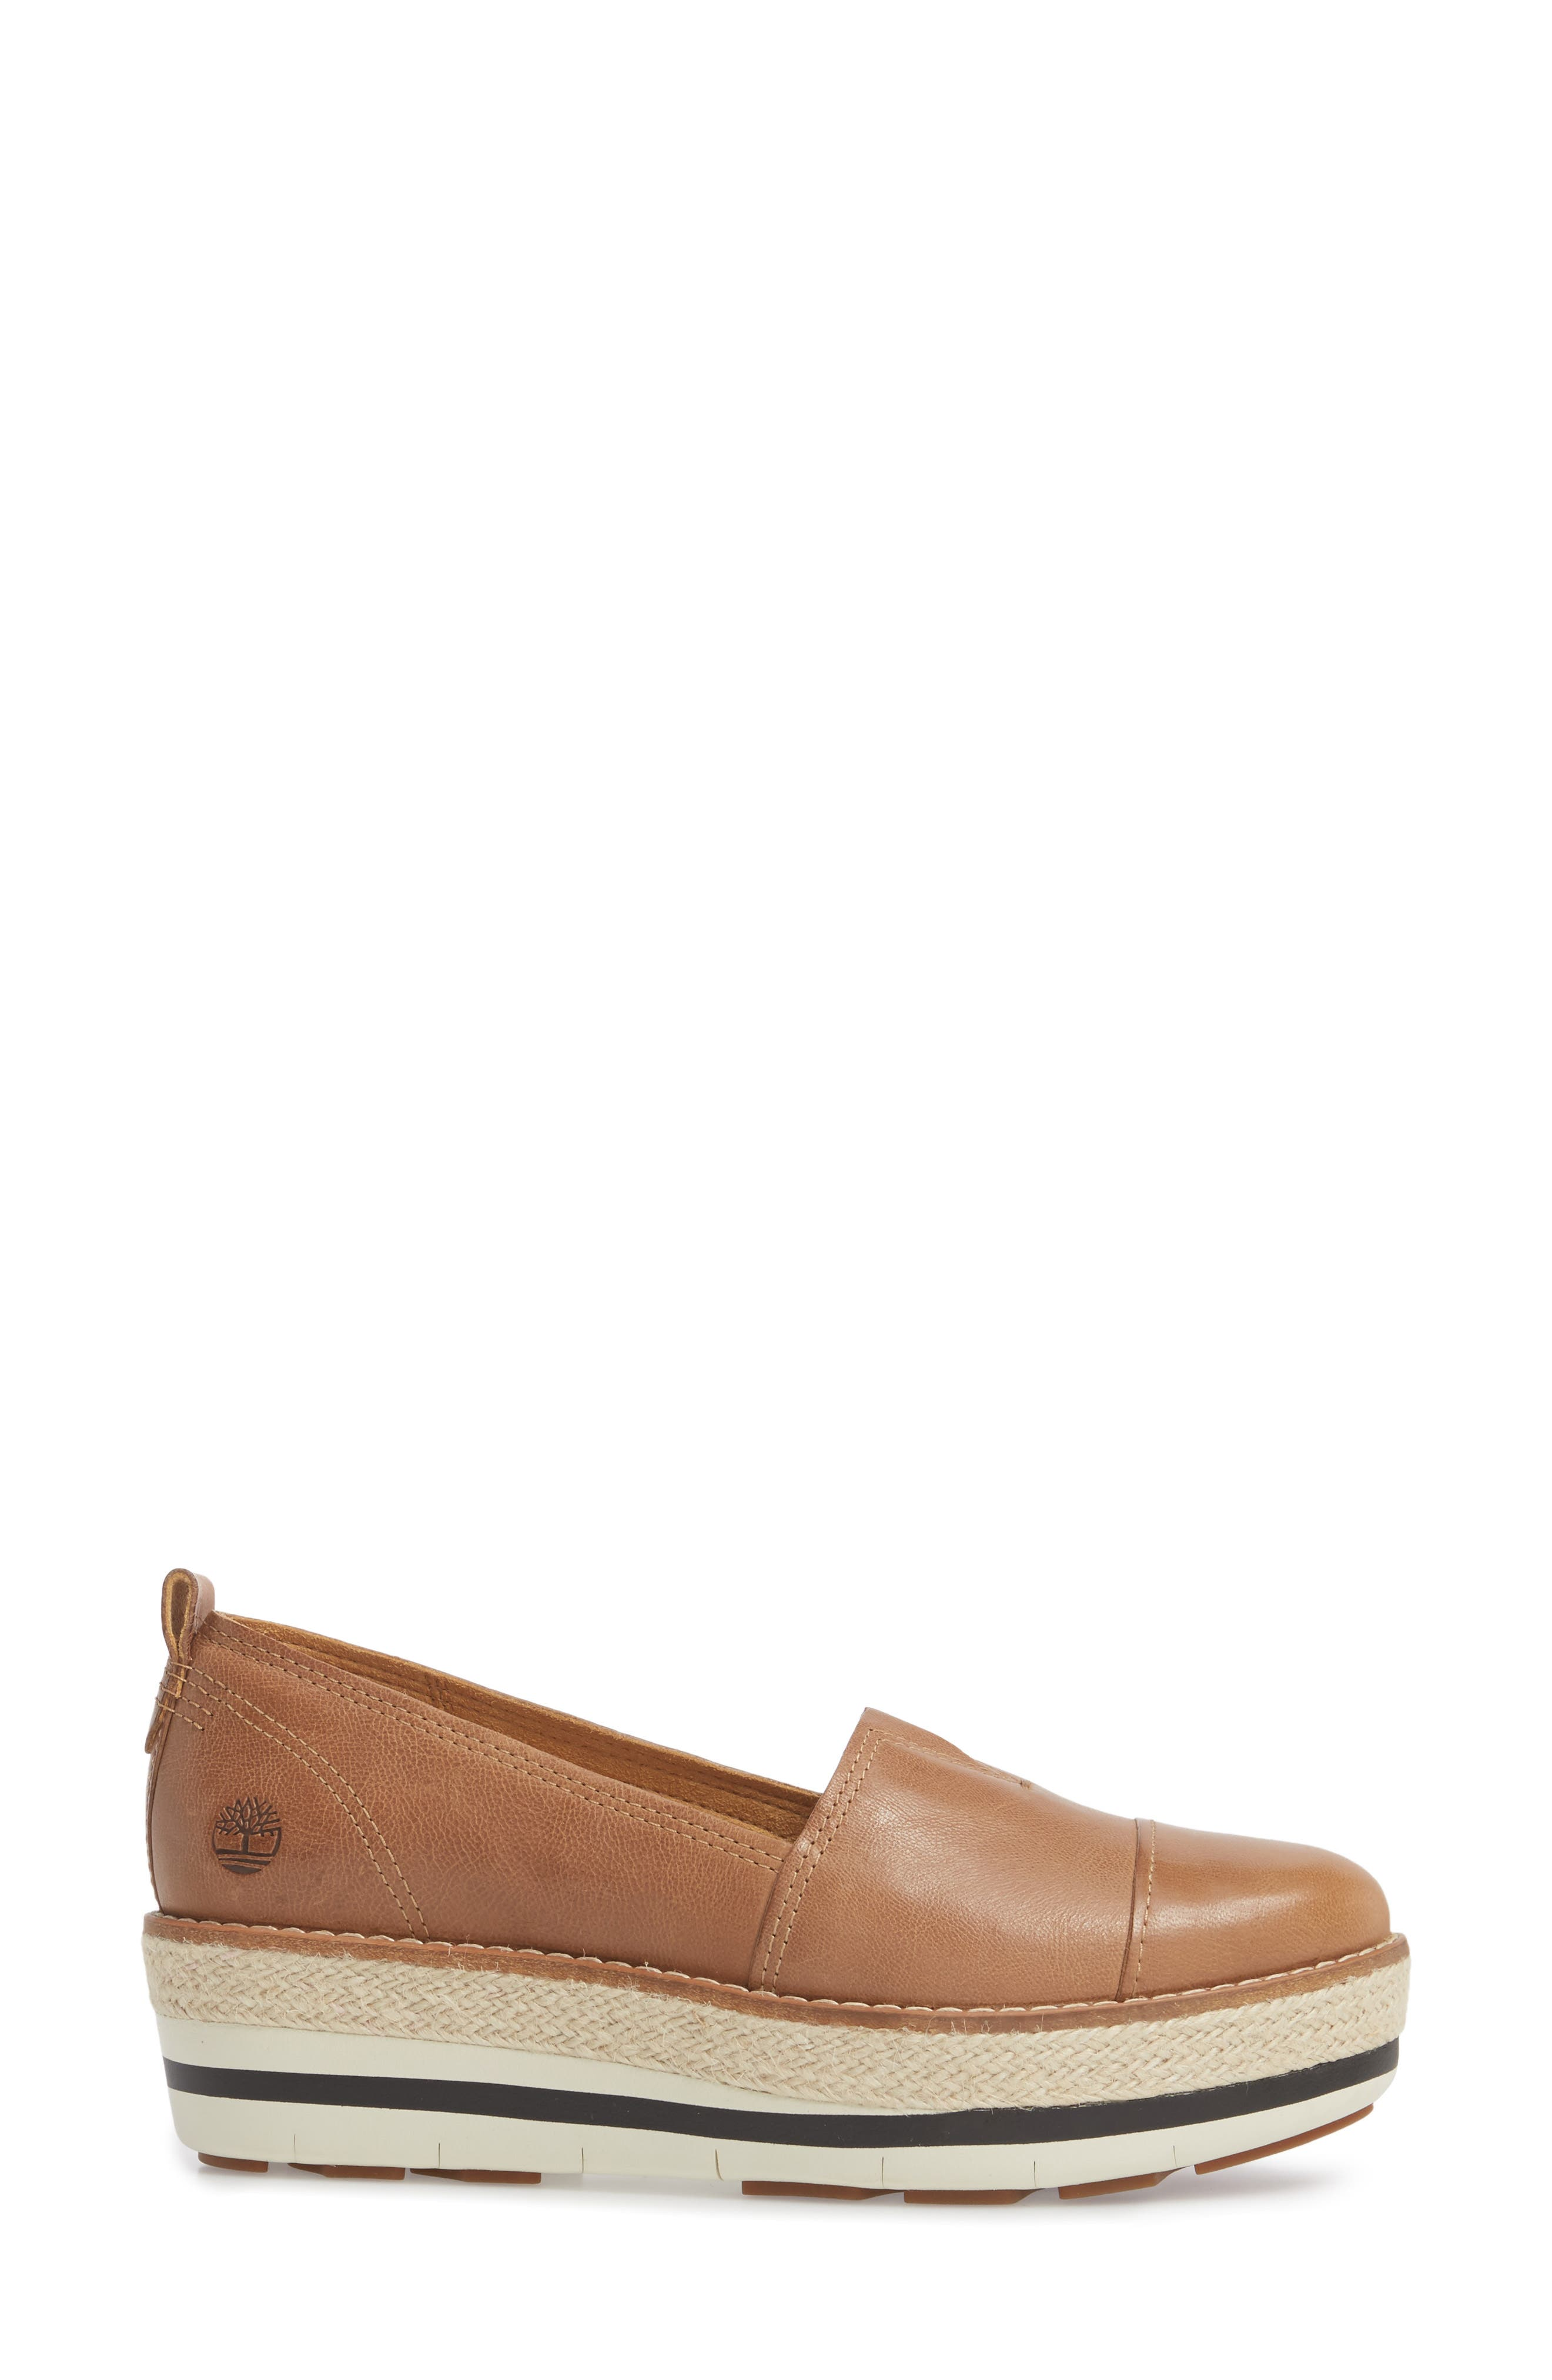 Emerson Platform Slip-On,                             Alternate thumbnail 3, color,                             Iced Coffee Leather